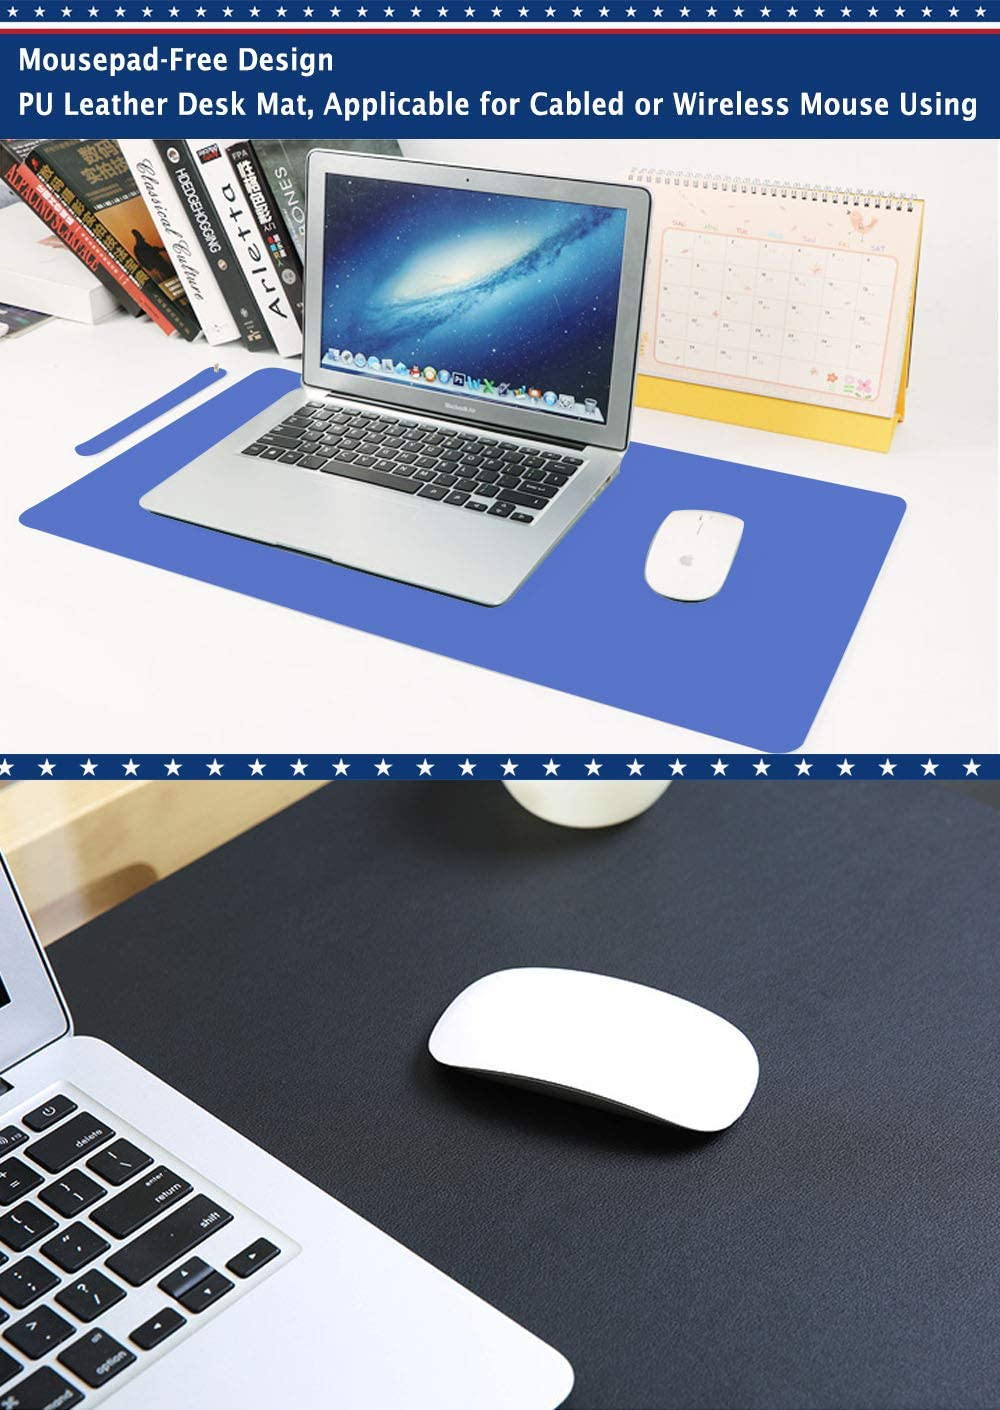 Clear Desk Pad Blotter Mats Office Clear Table Protector on Top of Desks for Laptop Computer Desktop Keyboard Pads Plastic Vinyl PVC Wipeable Waterproof with Mouse Pad Mat Extra Large 24 x 48